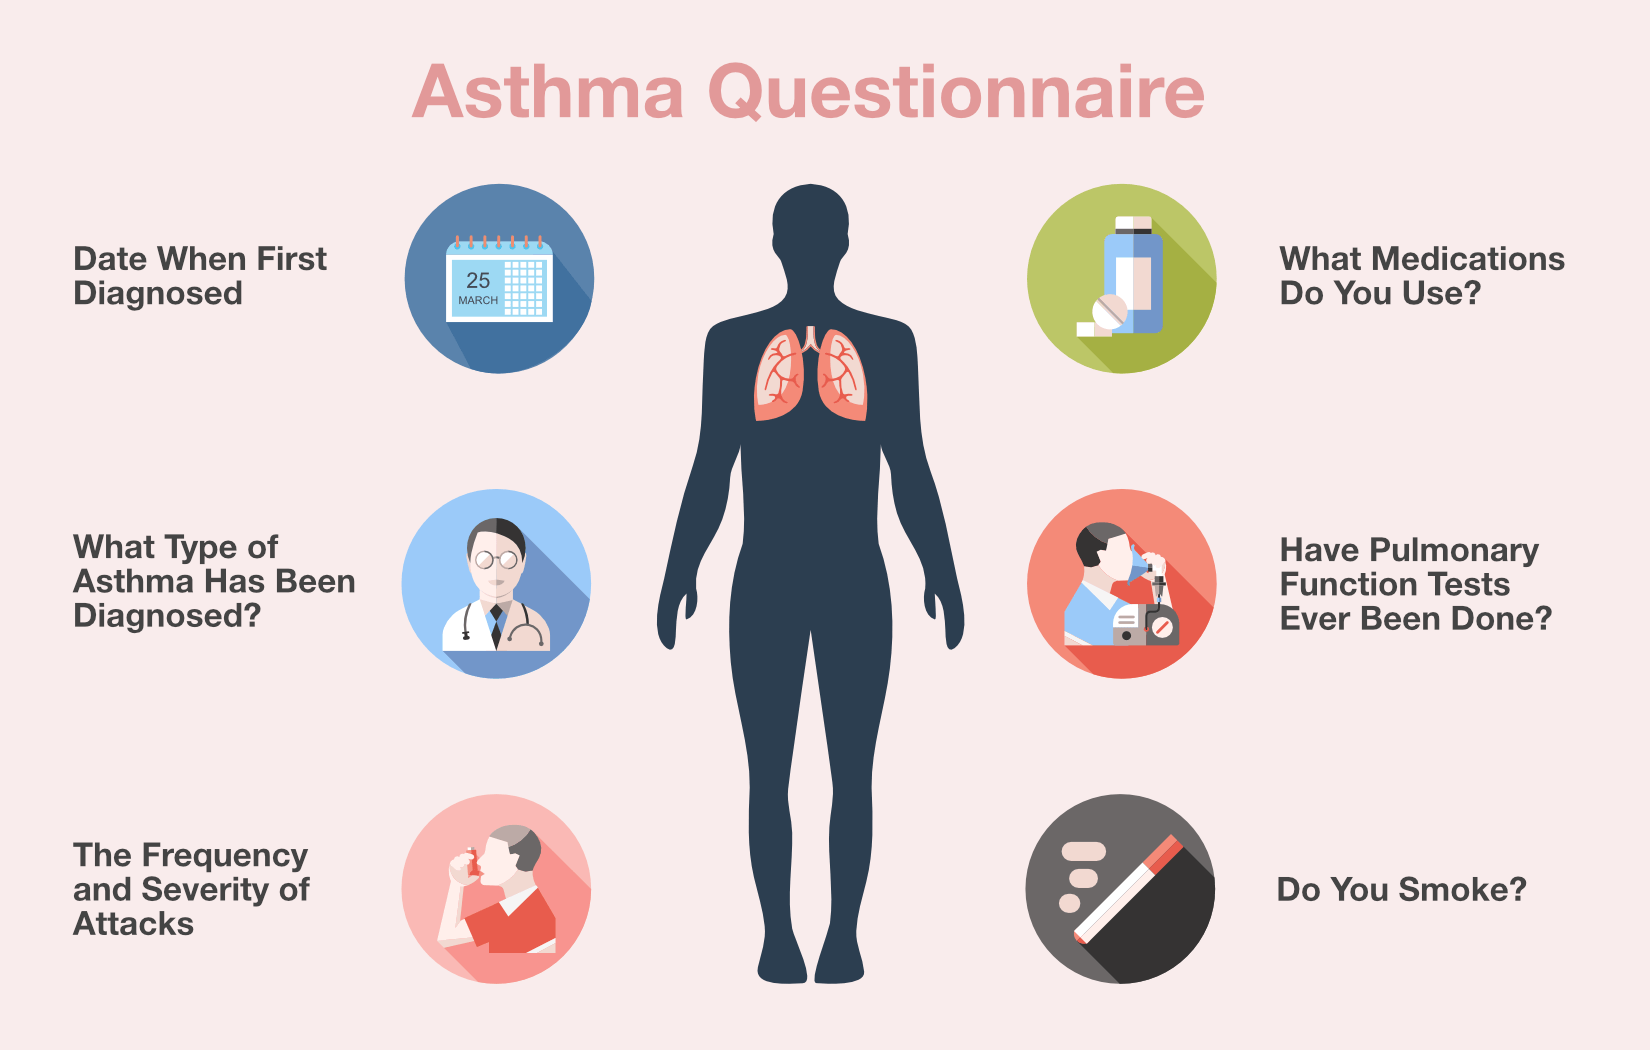 asthma questionnaire infographic